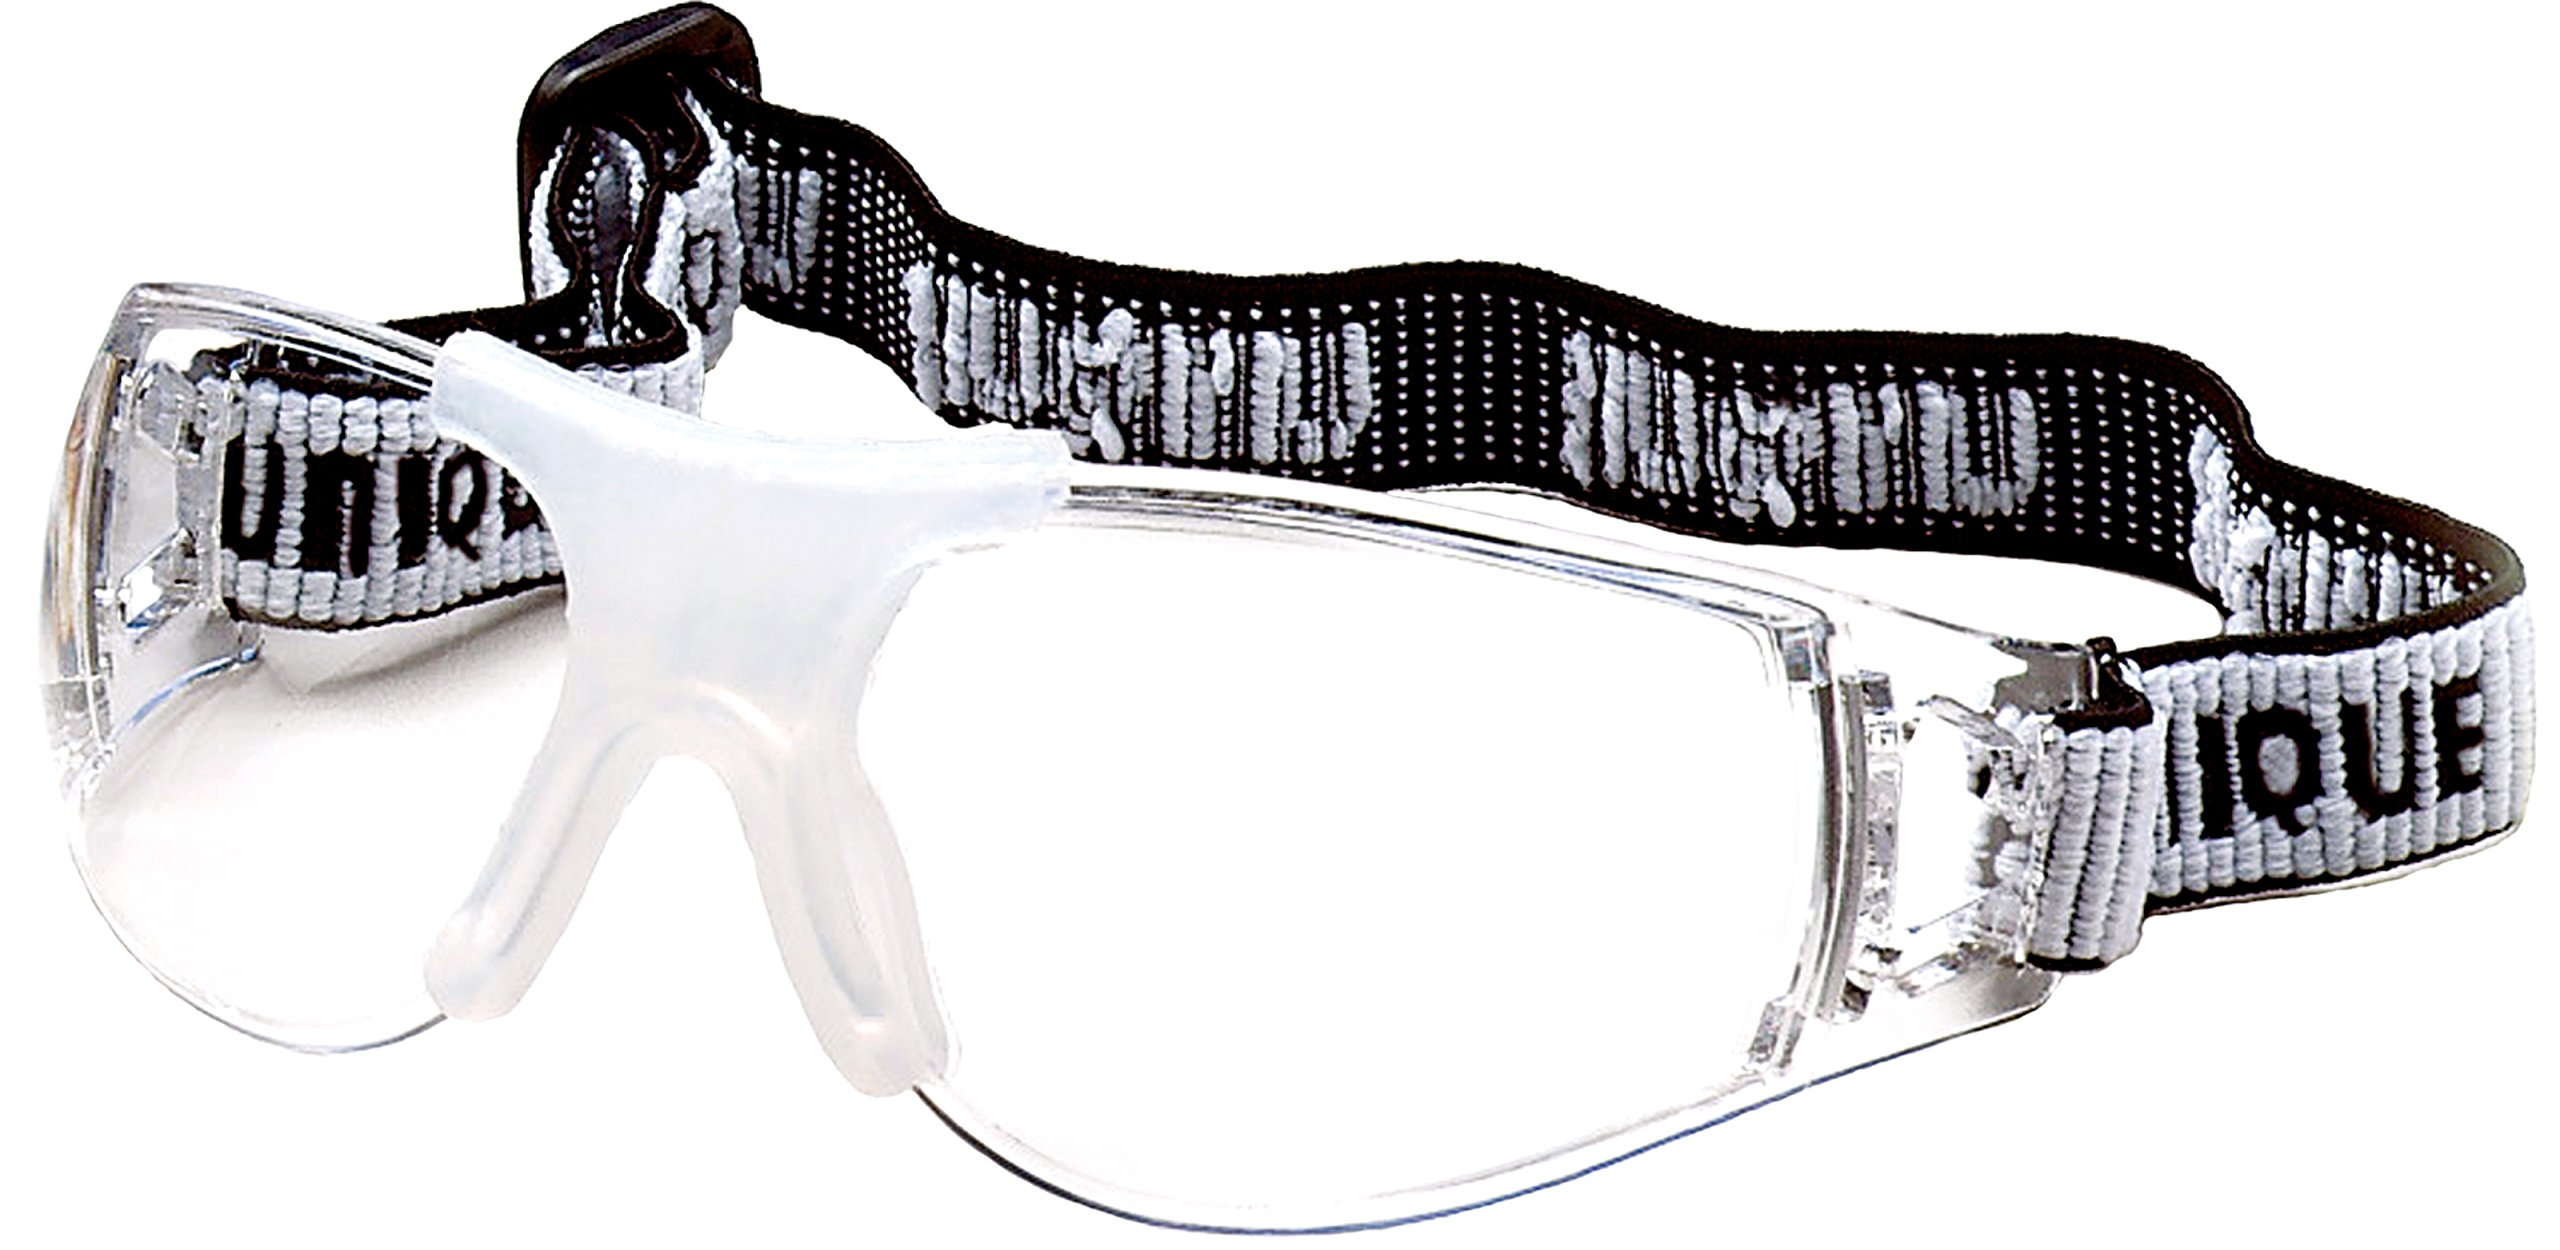 Unique Sports Super Specs Eye Protectors